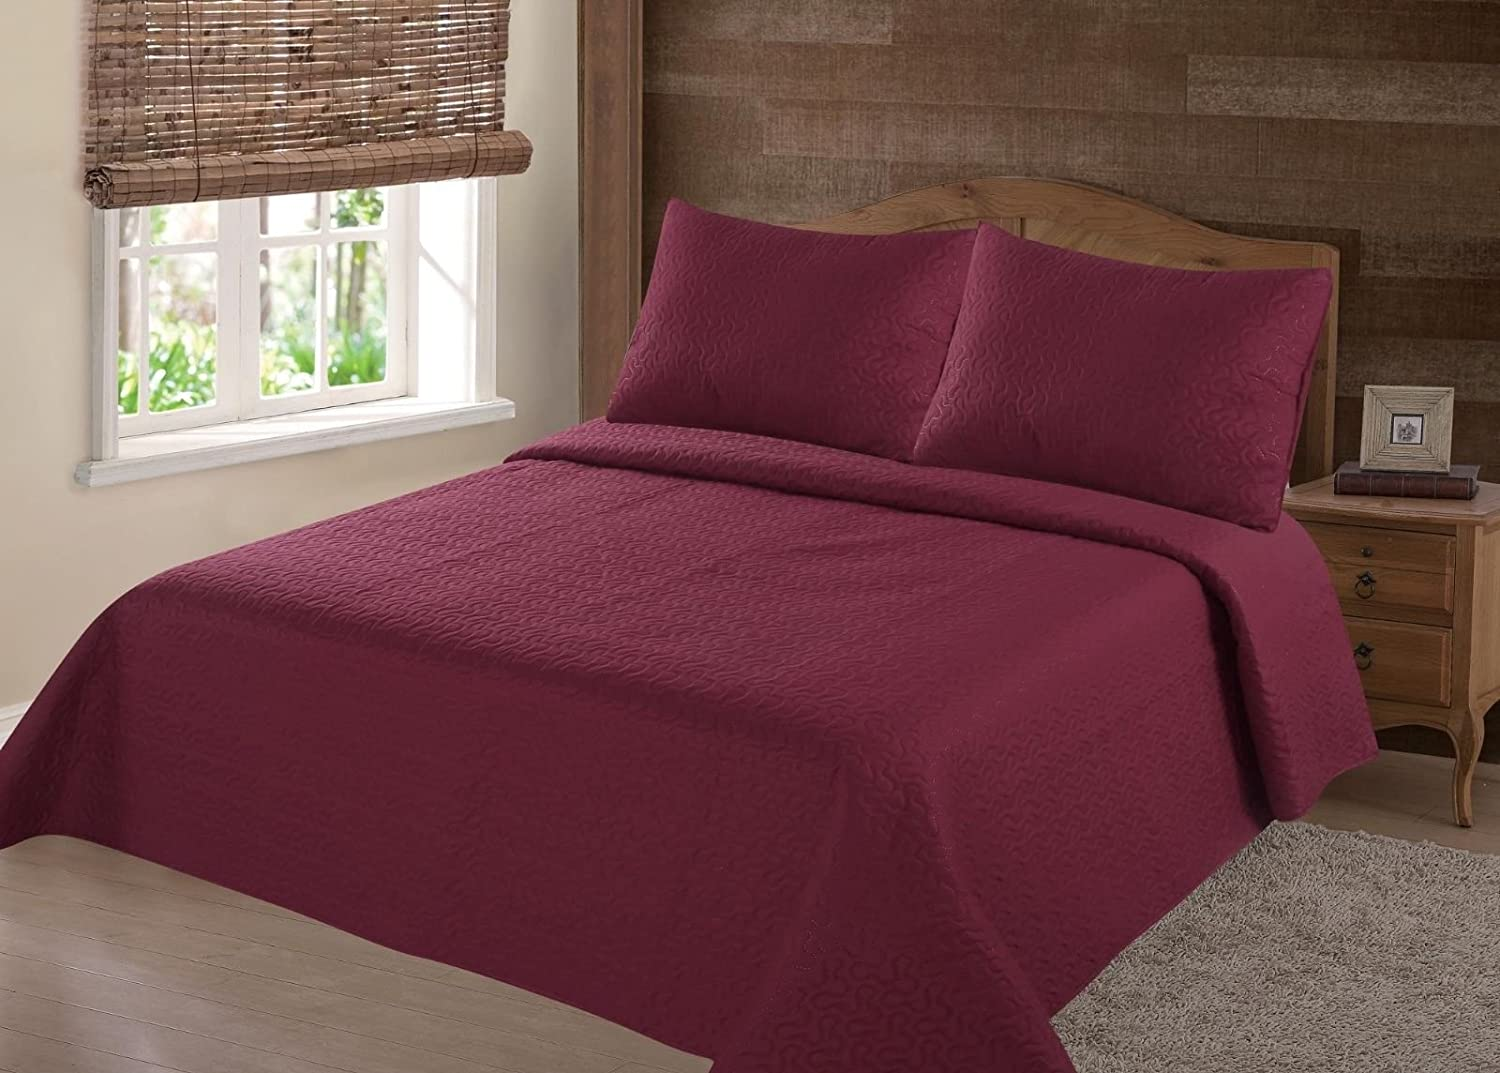 GorgeousHomeLinen (NENA) Burgundy Wine Solid Hypoallergenic Quilt Bedspread Bed Bedding Coverlets Cover Set with Pillow Cases Size inc: Twin (2pc) Full Queen King (3pc) (Full)